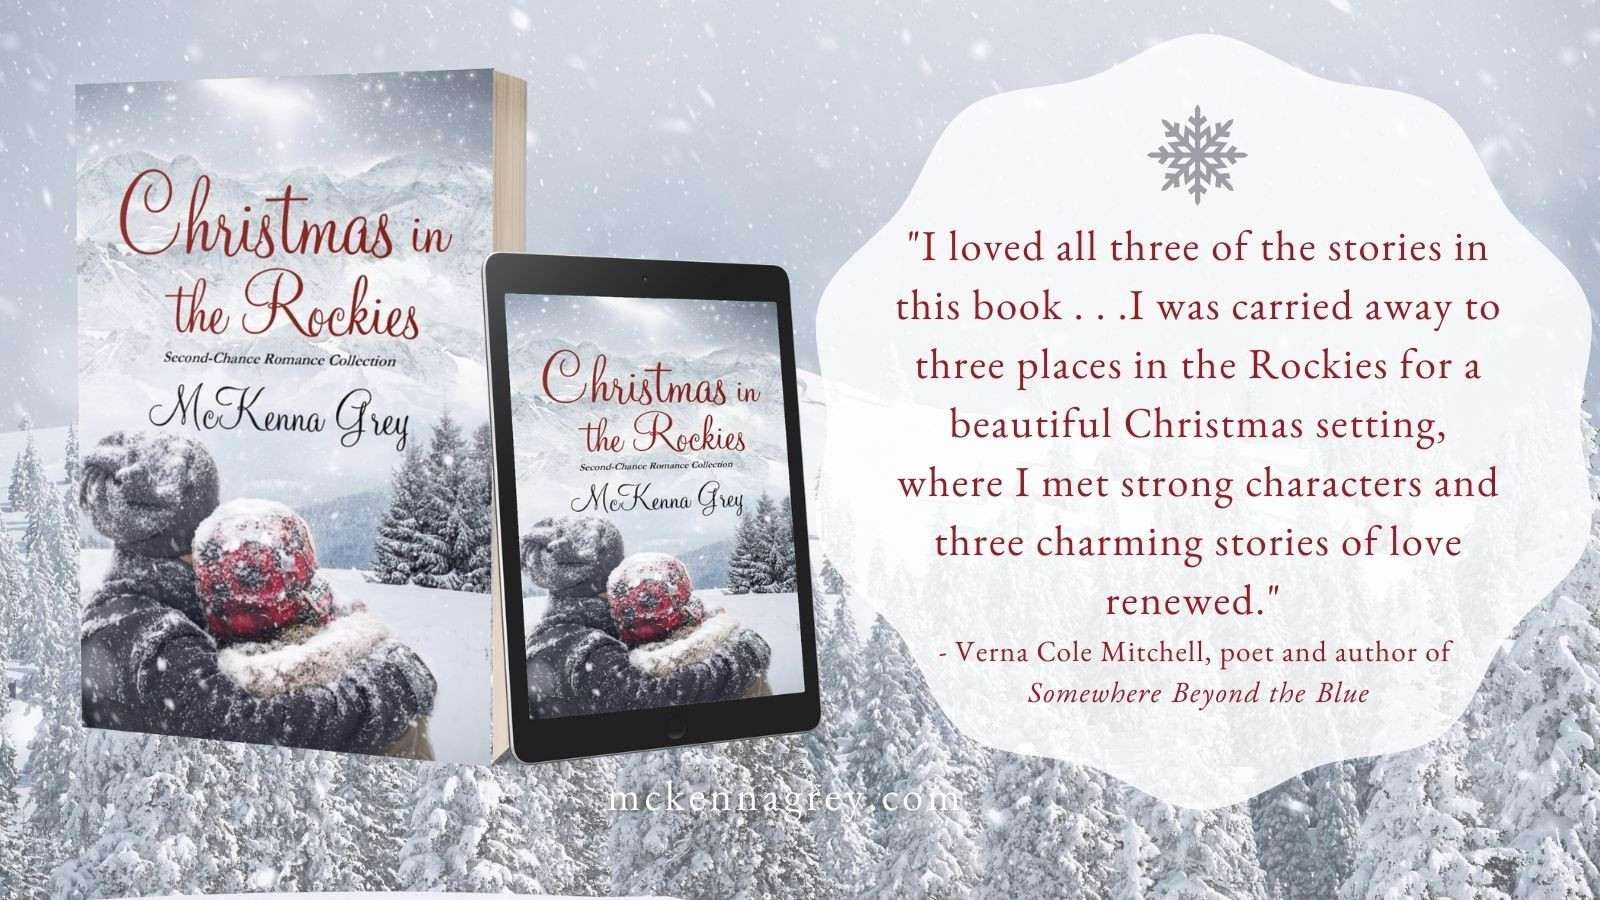 Christmas in the Rockies_McKenna Grey_tw